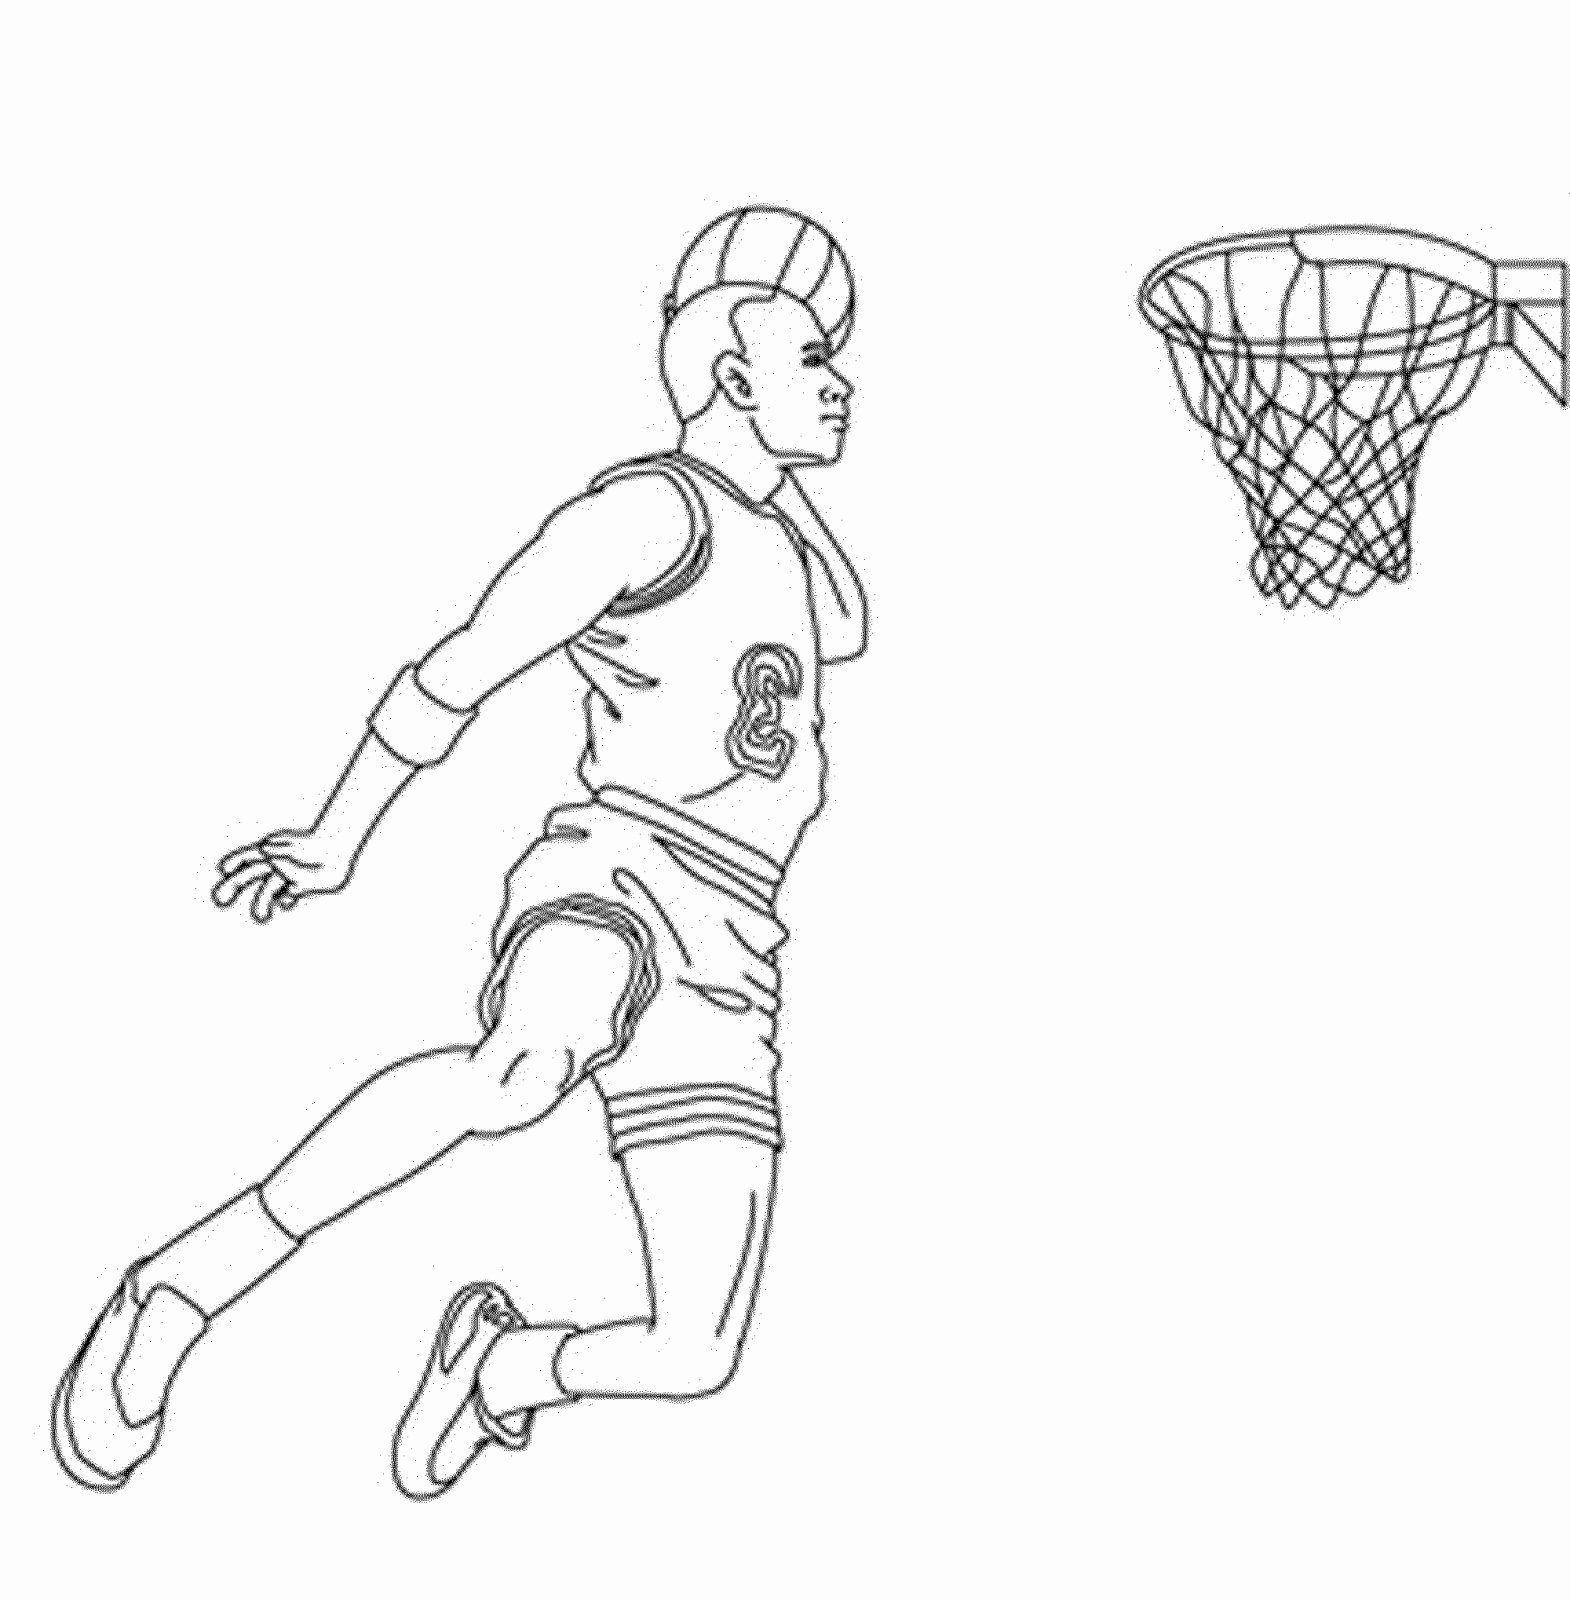 Sports Coloring Pages Pdf Coloring Pages Gallery Sports Coloring Pages Coloring Pages Coloring Pages For Boys